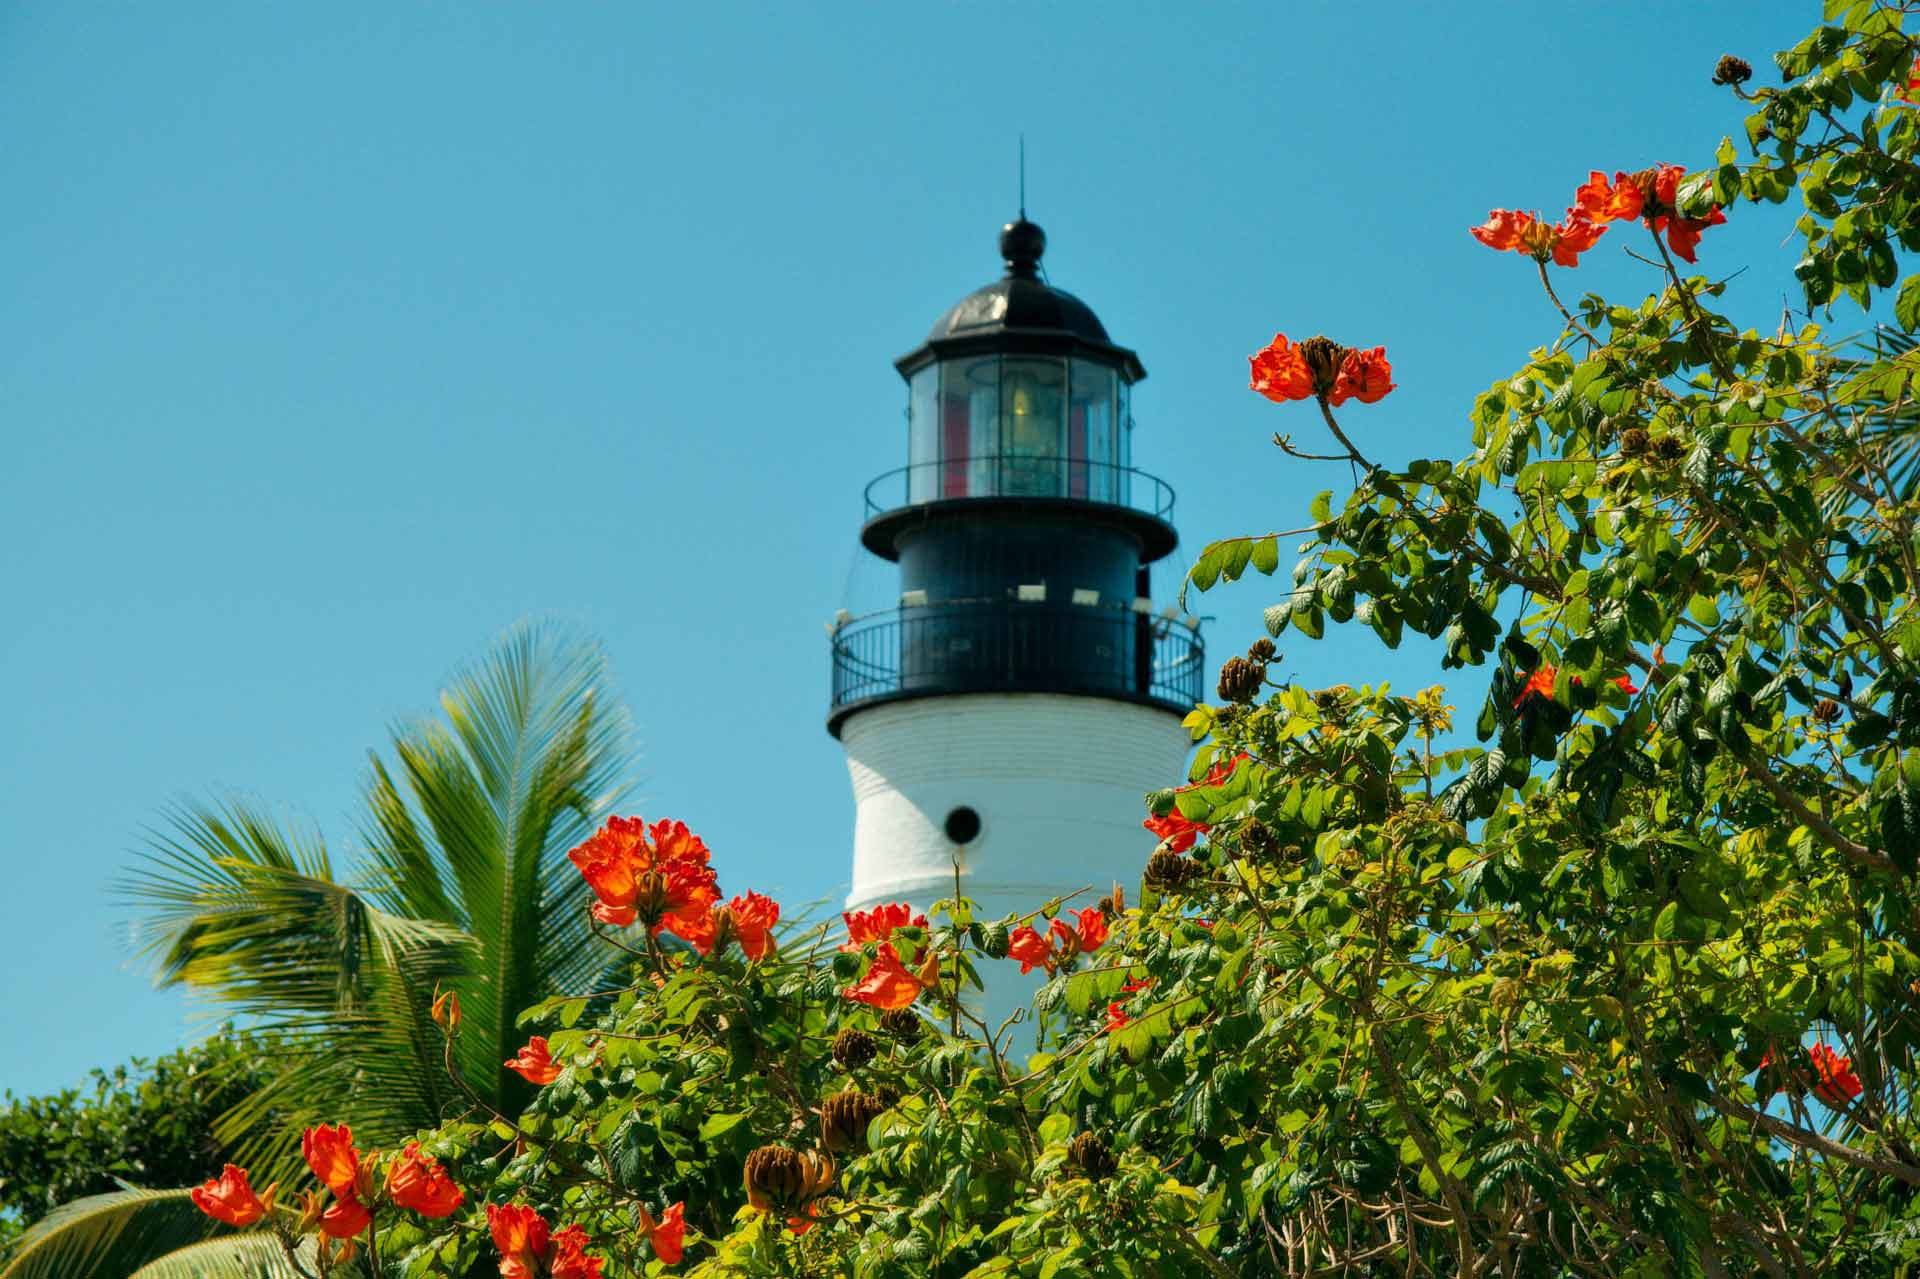 Picture of a lighthouse in Coral Gables with red flowers in the foreground